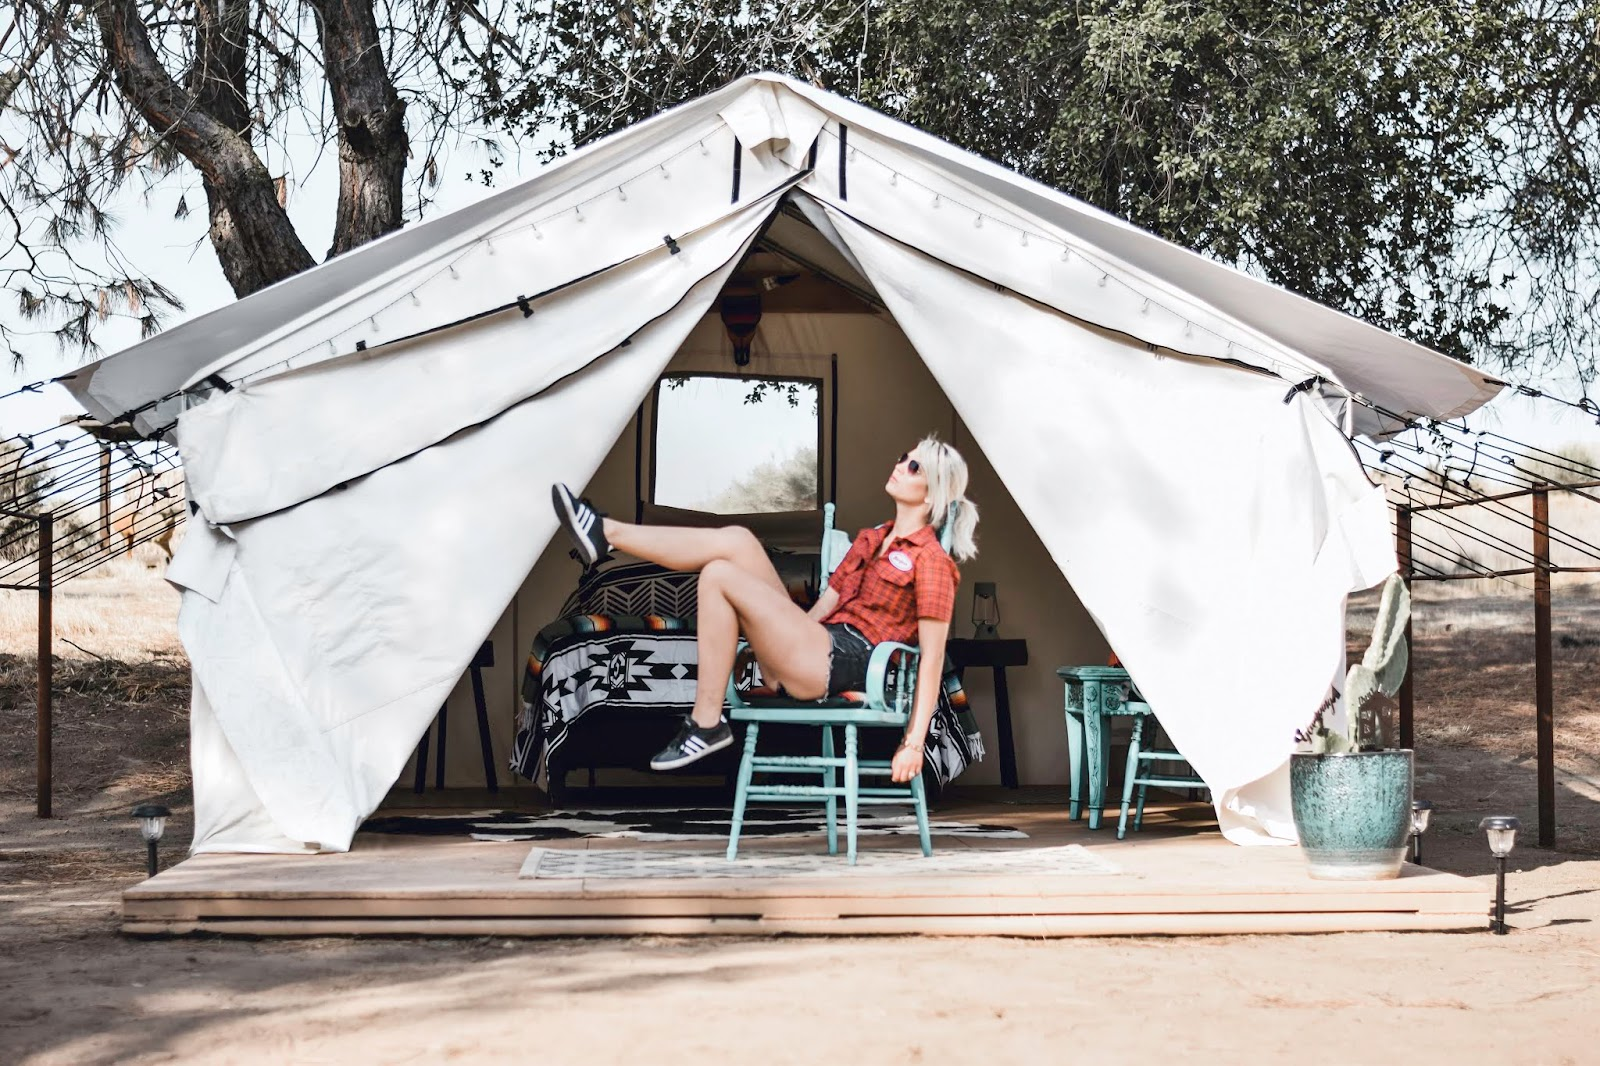 Twisselman ranch glamping